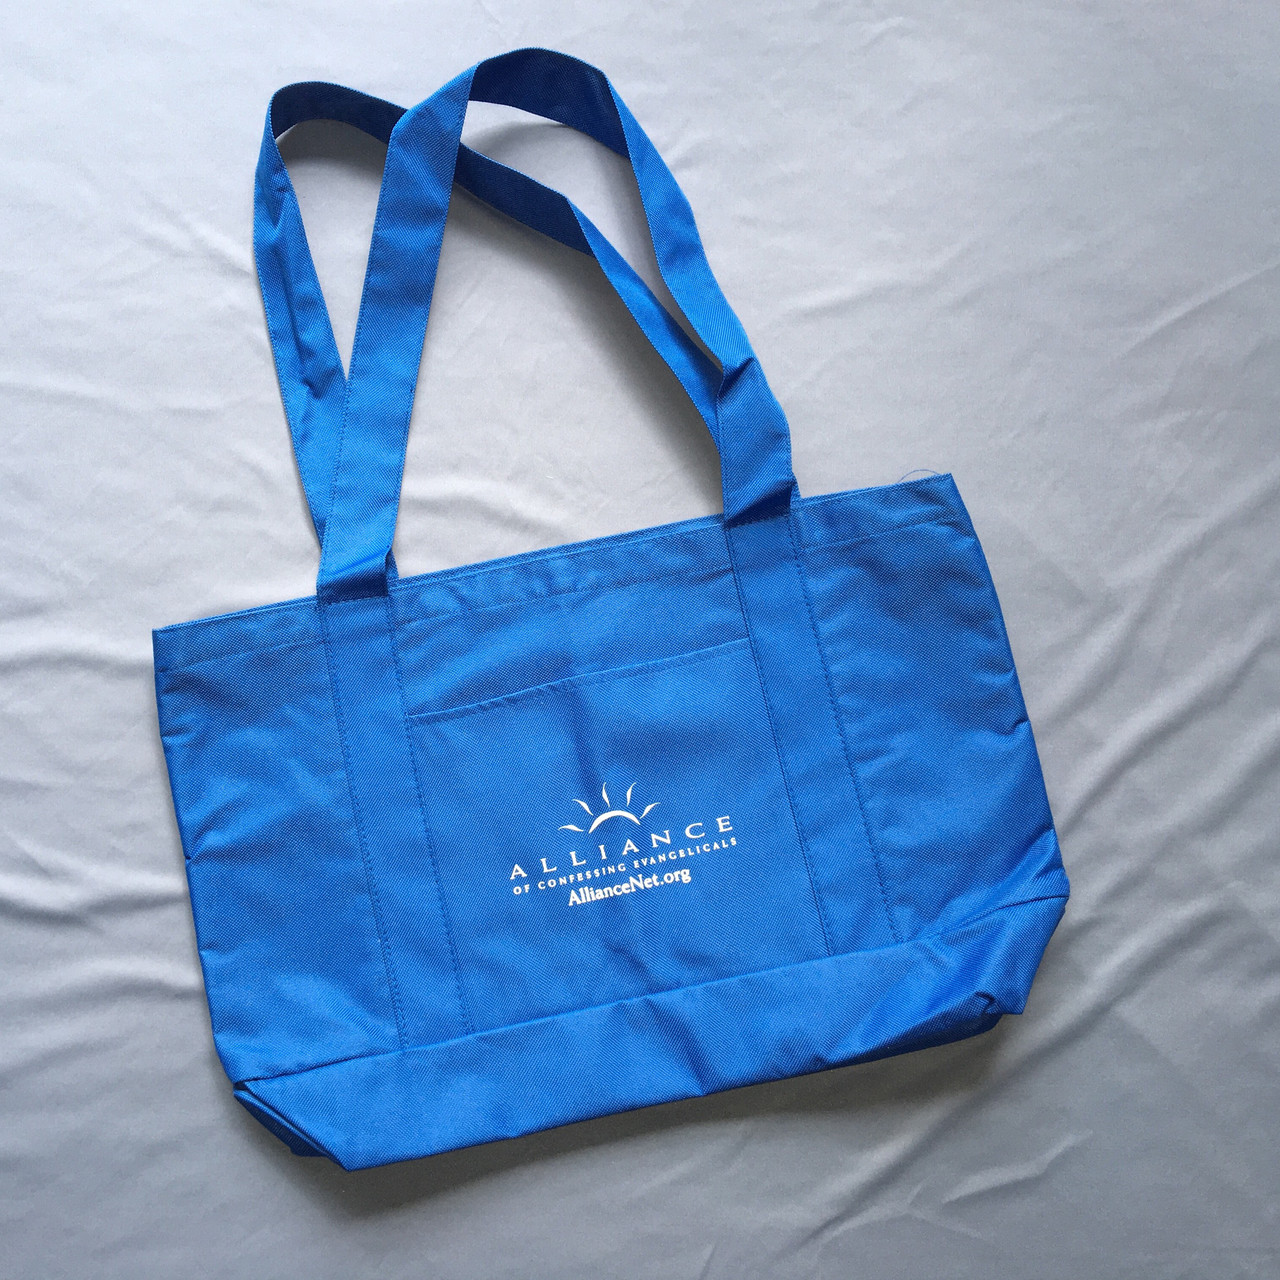 Alliance Canvas Tote Bag